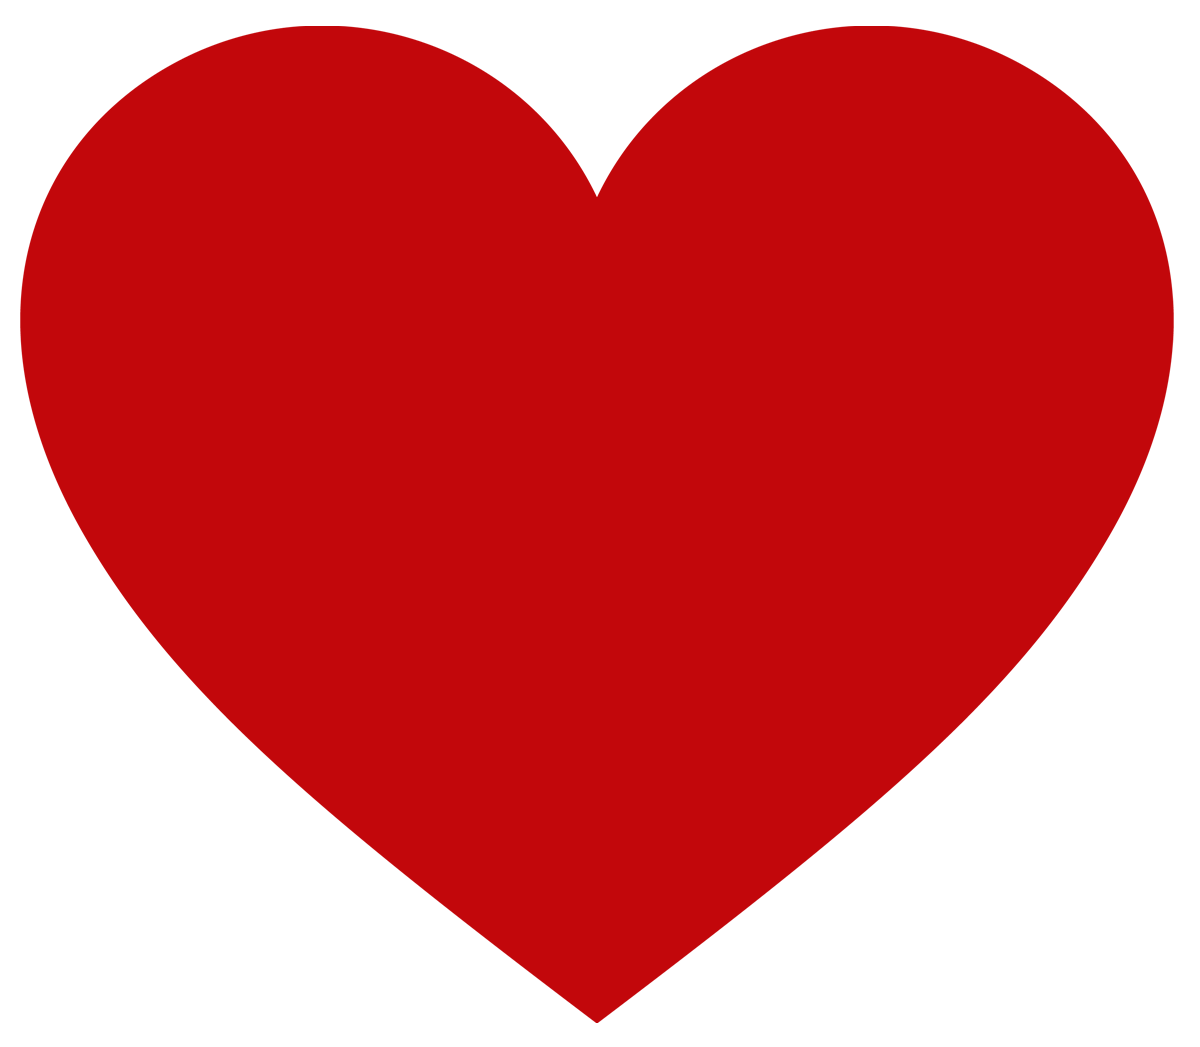 love clipart free images 3